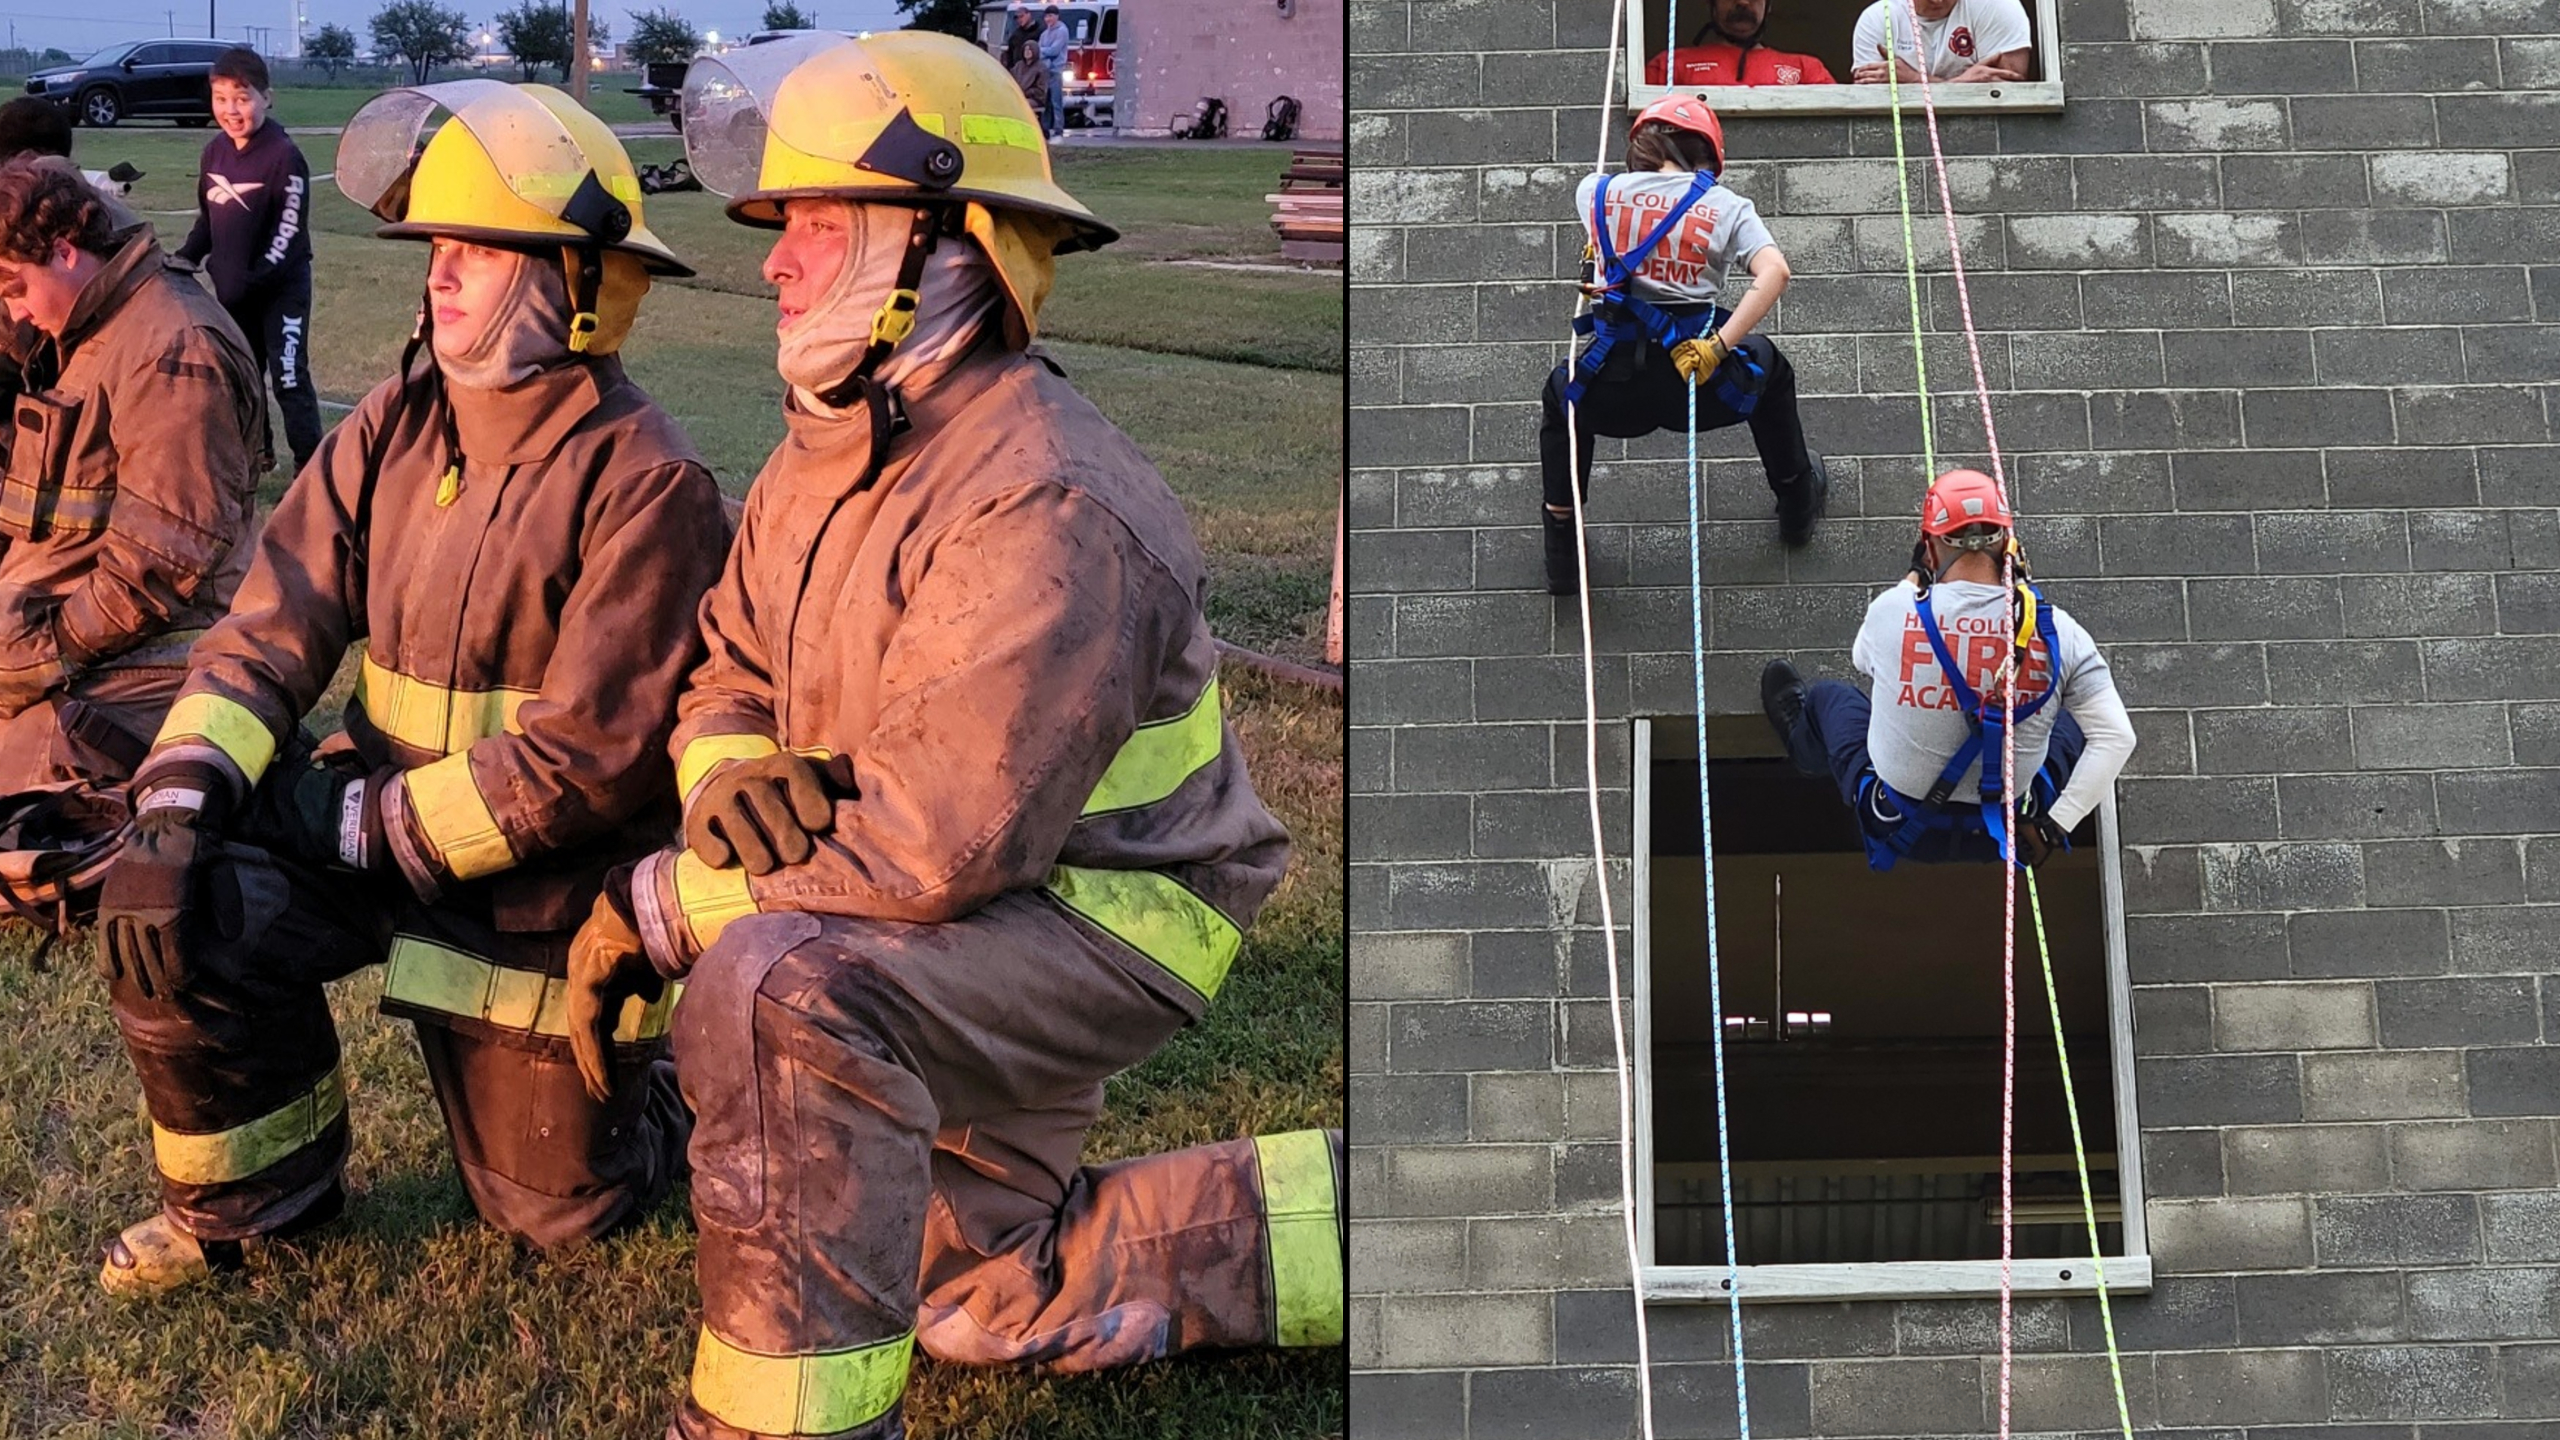 Dad Daughter Firefighter Duo